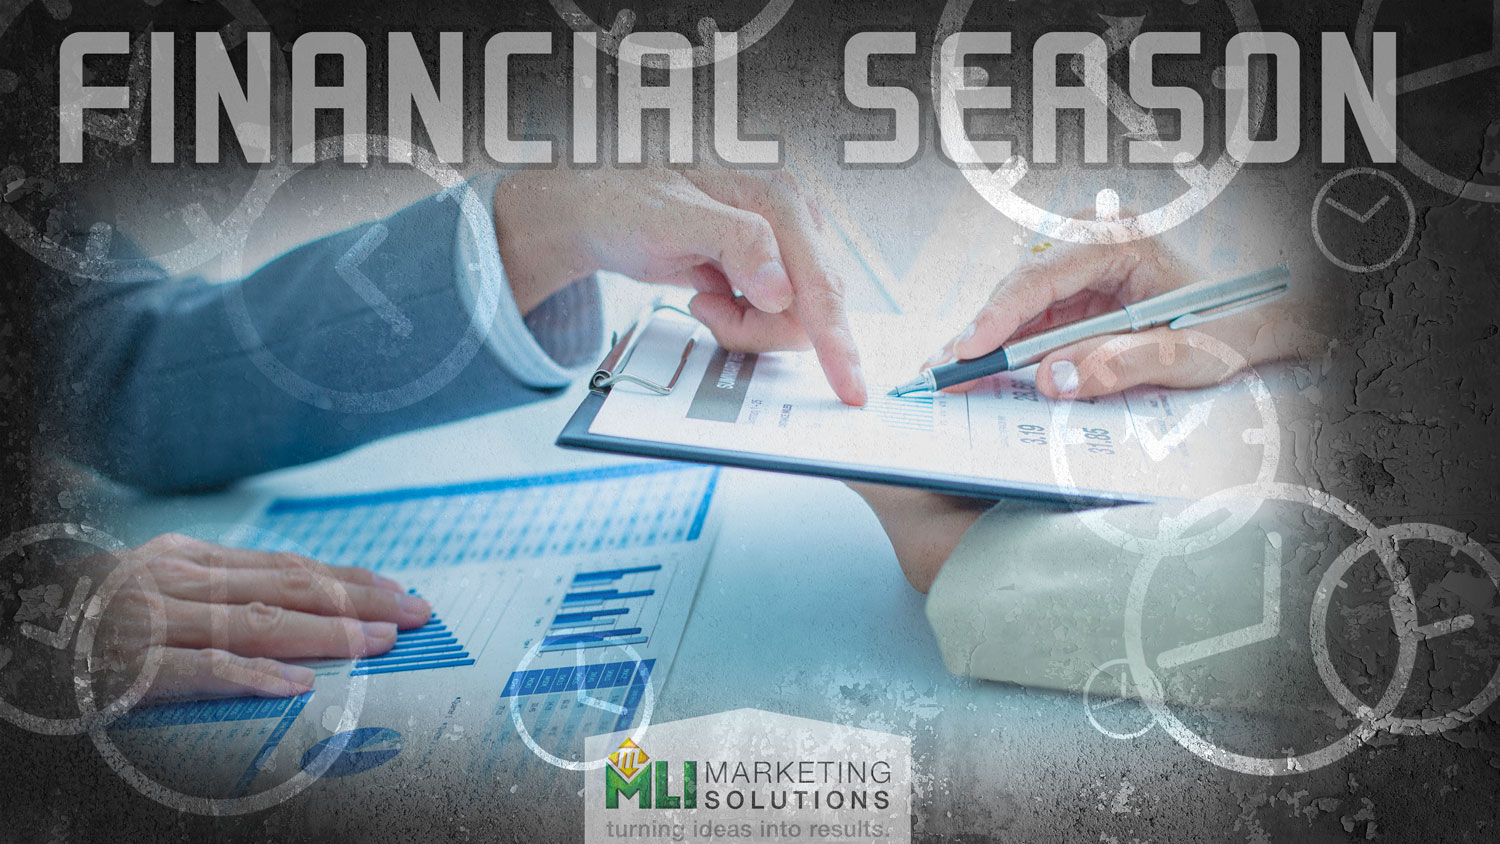 finincial advisor taxseason Seminar Marketing Financial Marketing